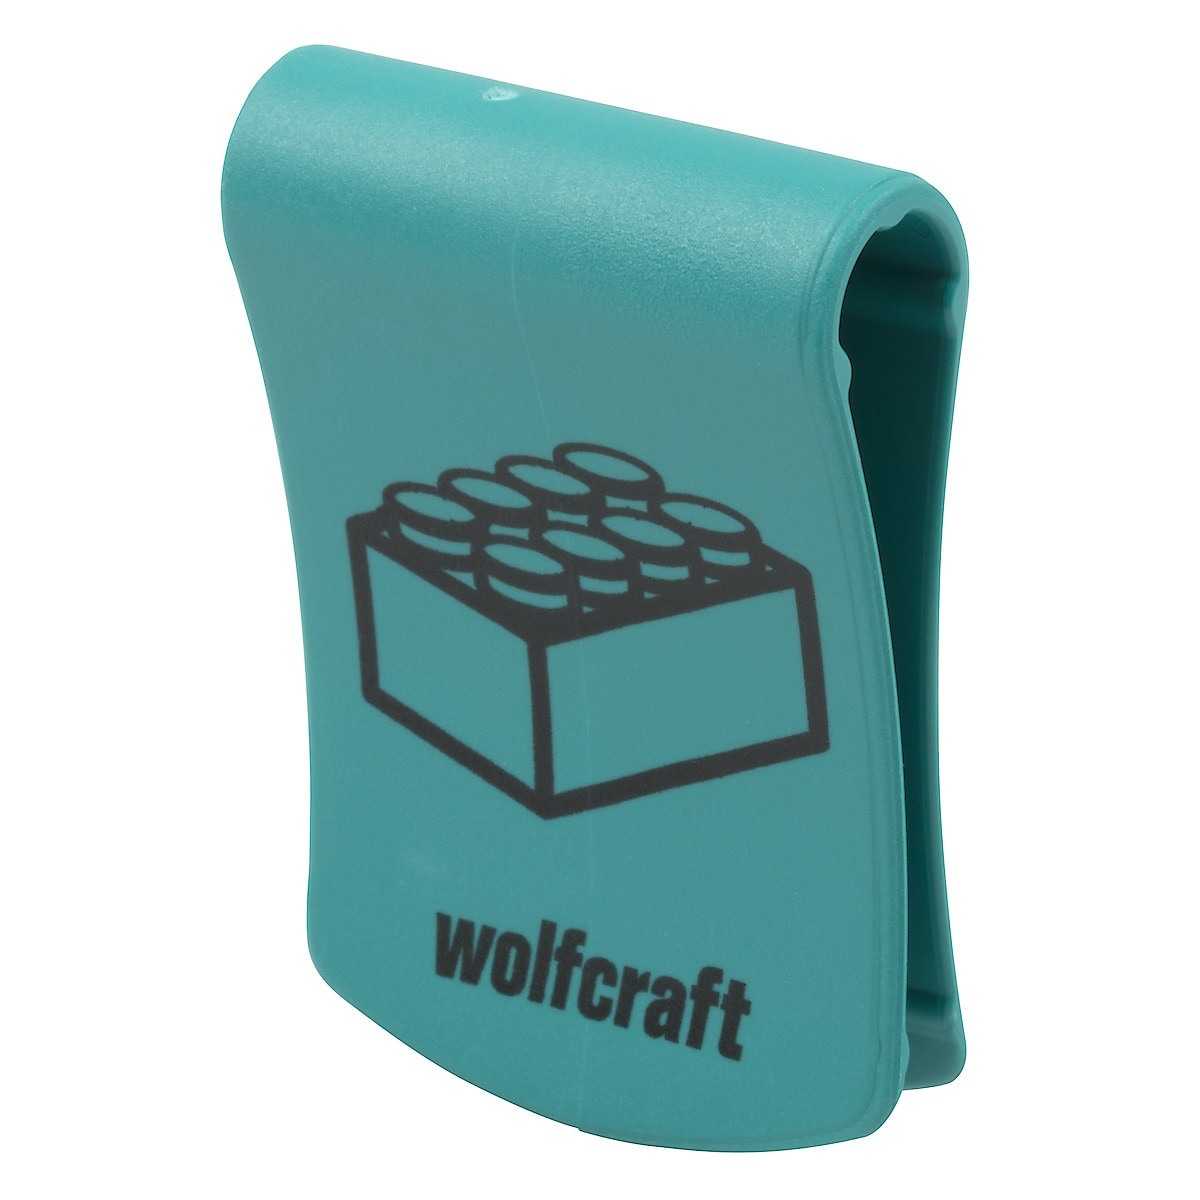 Märkclips Wolfcraft, 30-pack